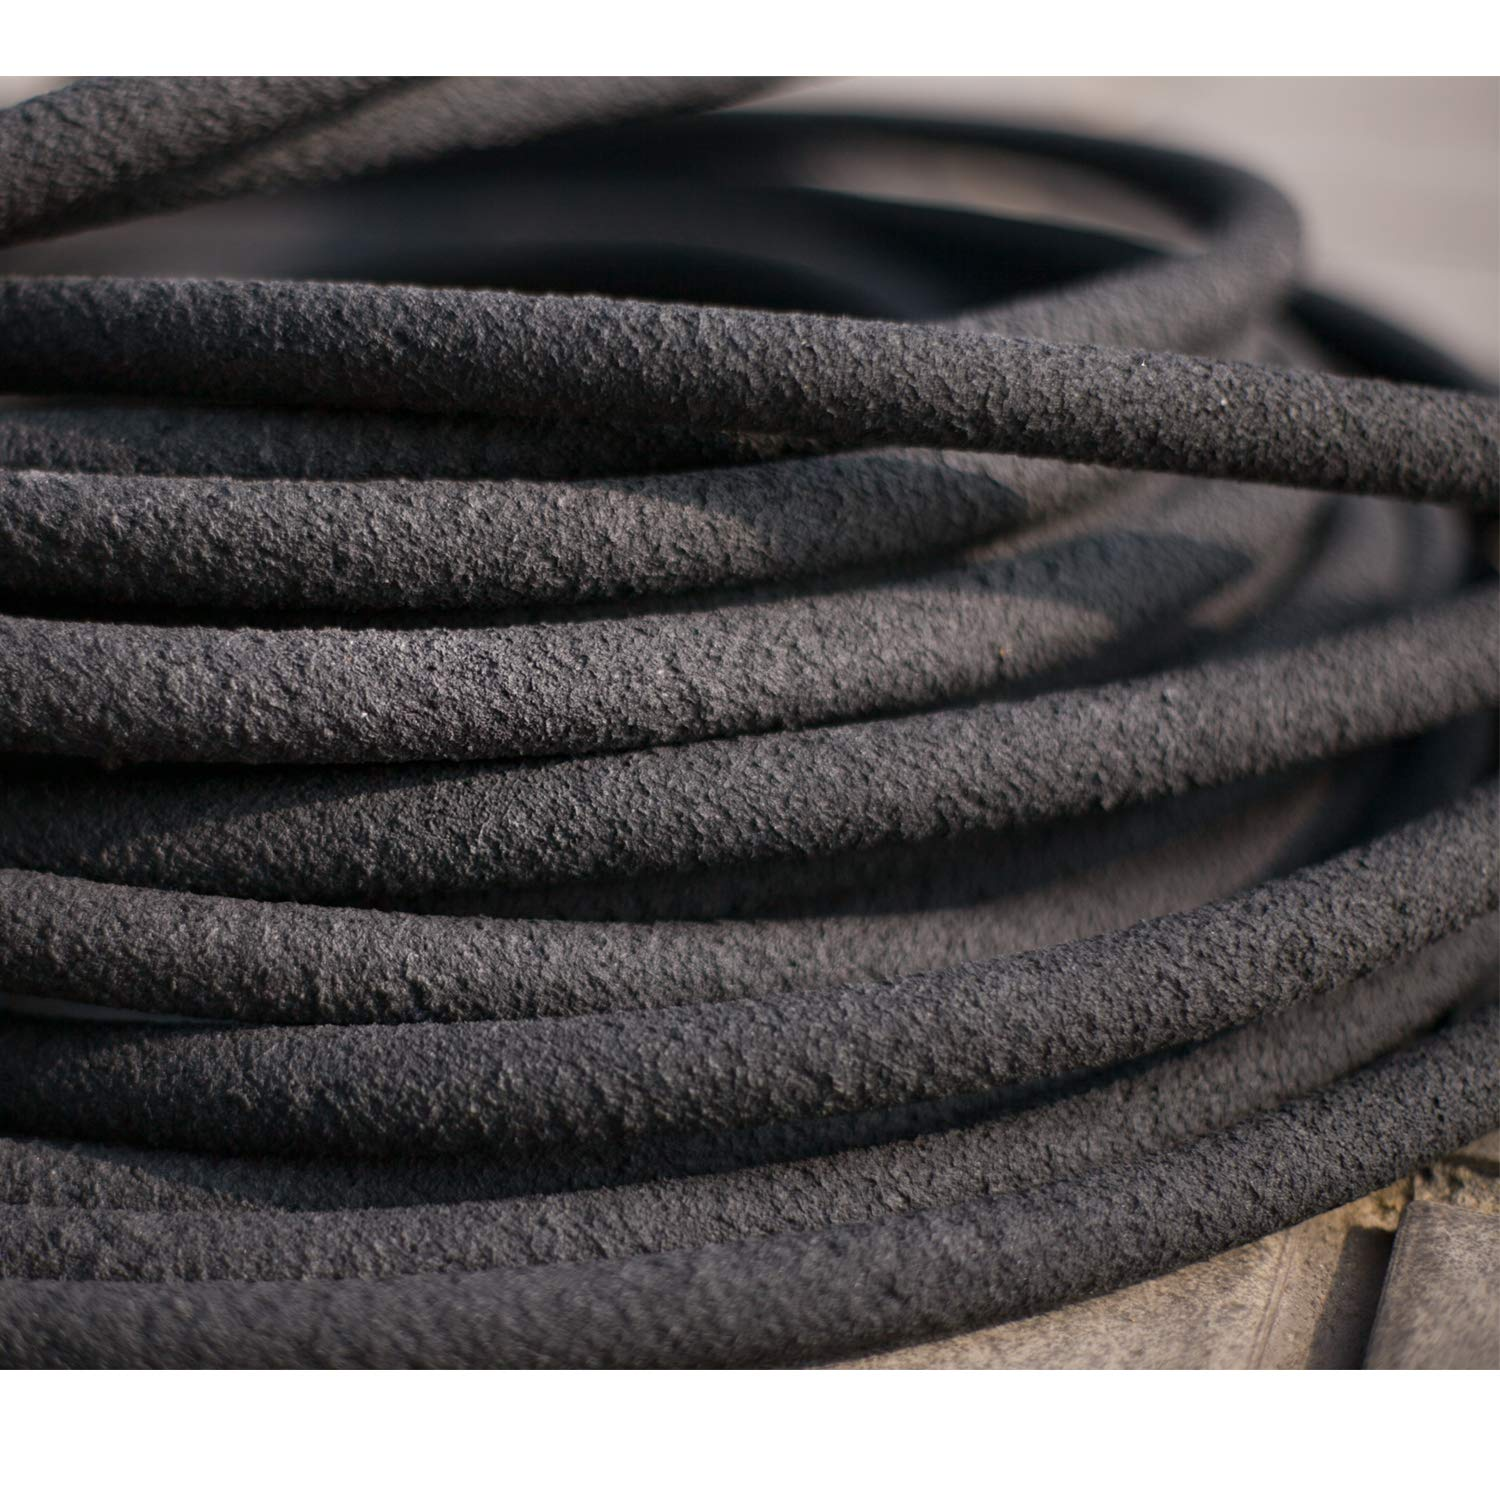 BUYOOKAY Soaker Hose 30ft with 1//2/'/' Diameter Interface Saves 70/% Water Great for Gardens//Flower Beds Black 30 x 1//2-b, Black 30 x 1//2-b